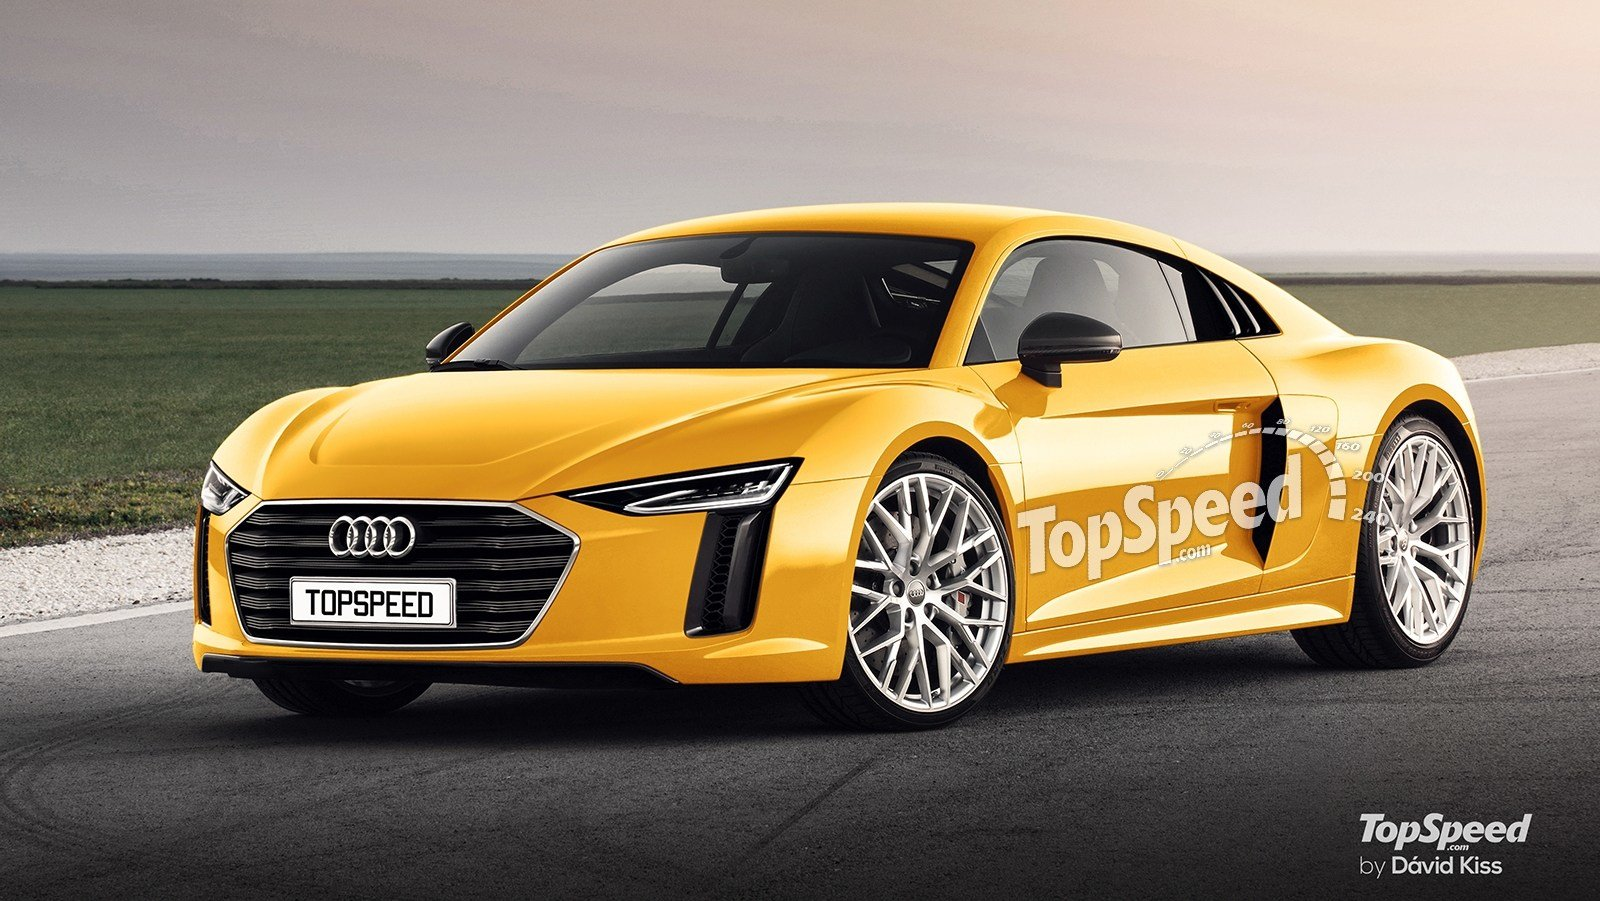 New 2019 Audi R6 Pictures Photos Wallpapers Top Speed On This Month